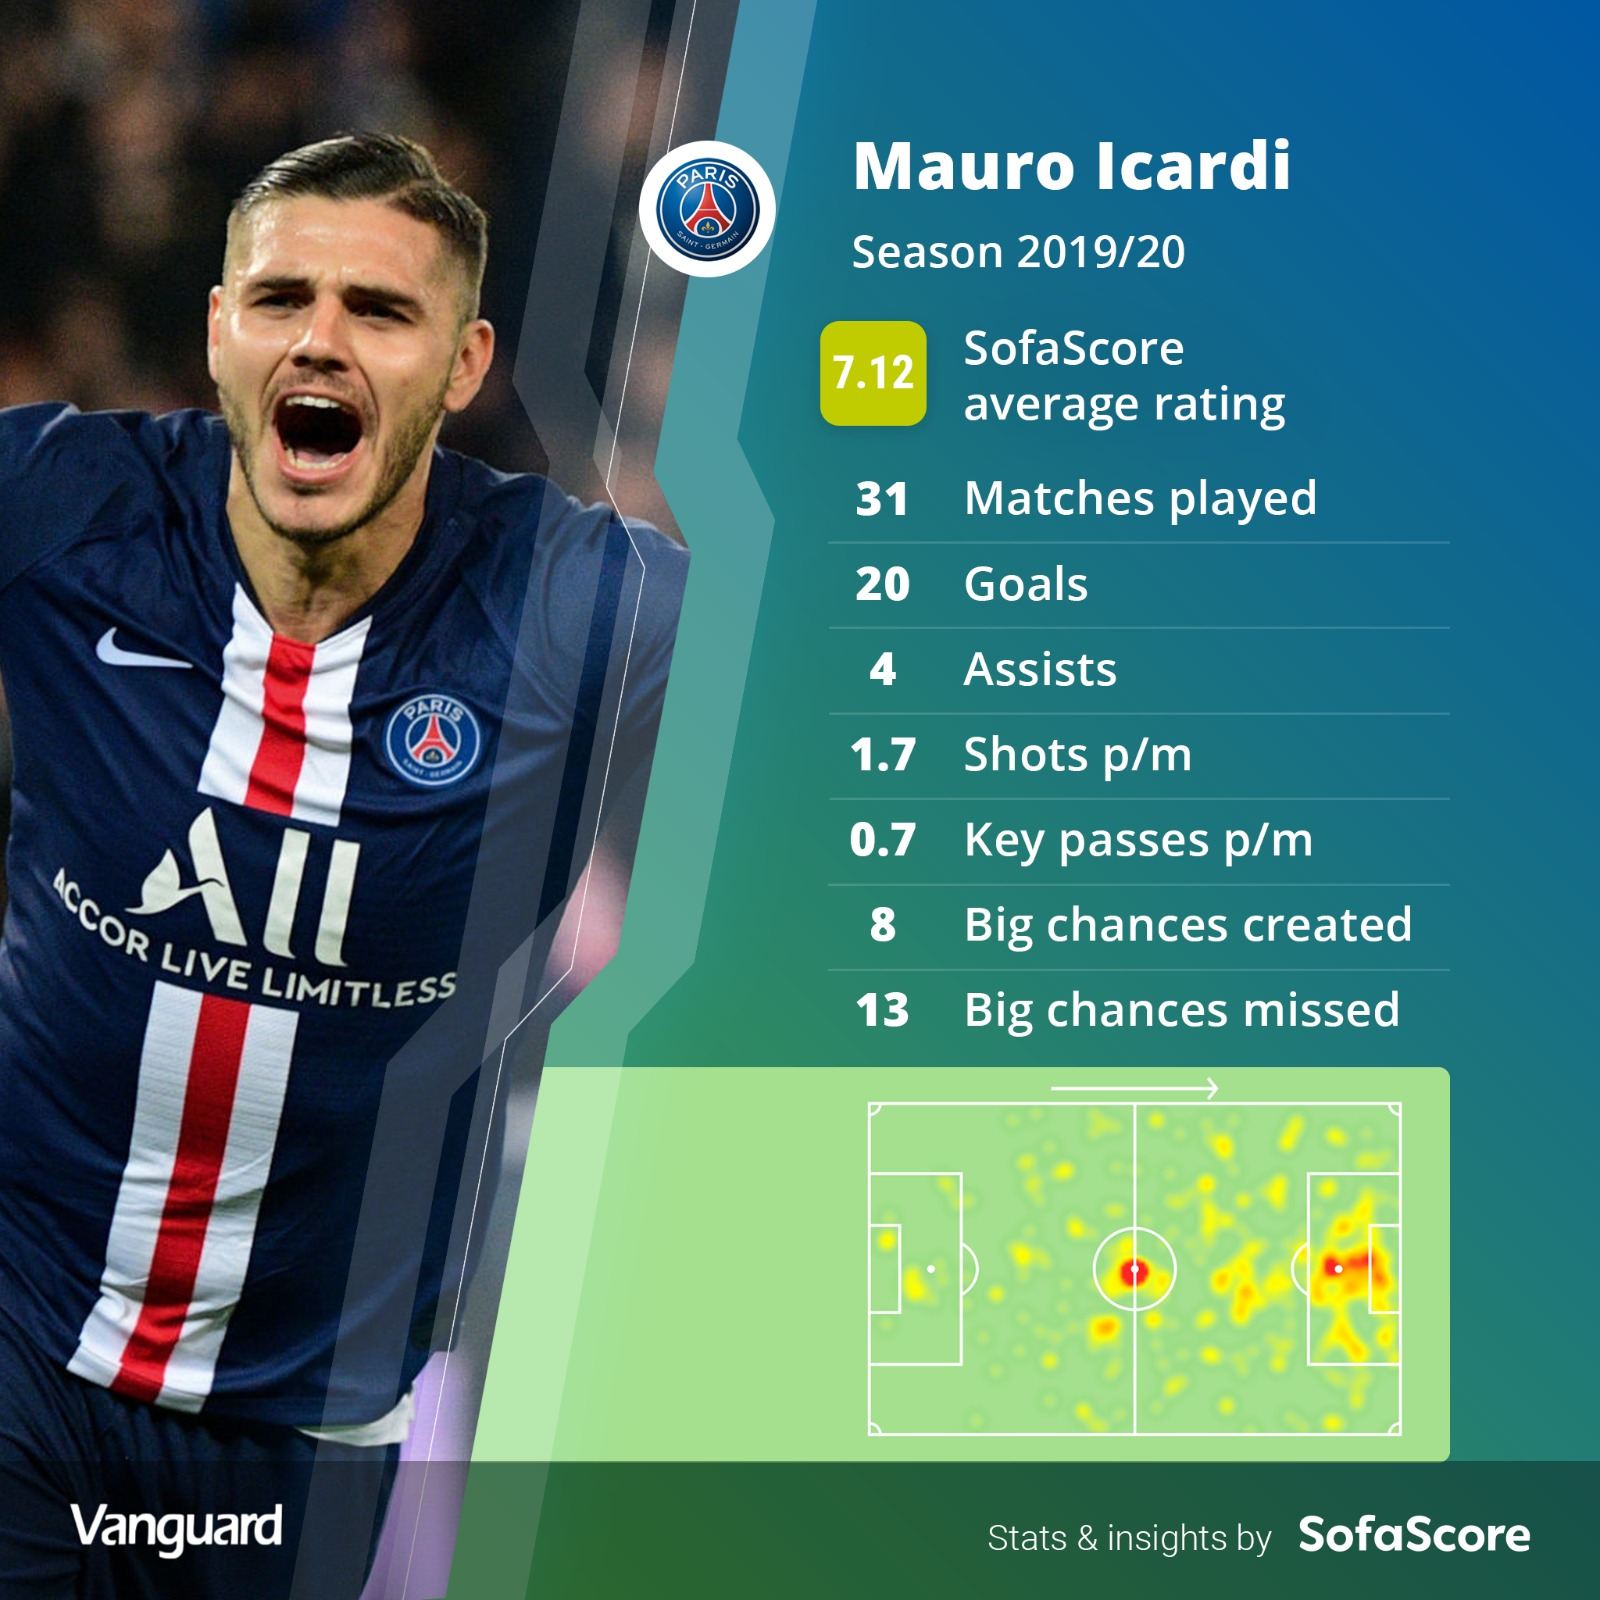 PSG sign striker Mauro Icardi on permanent deal, says Inter Milan